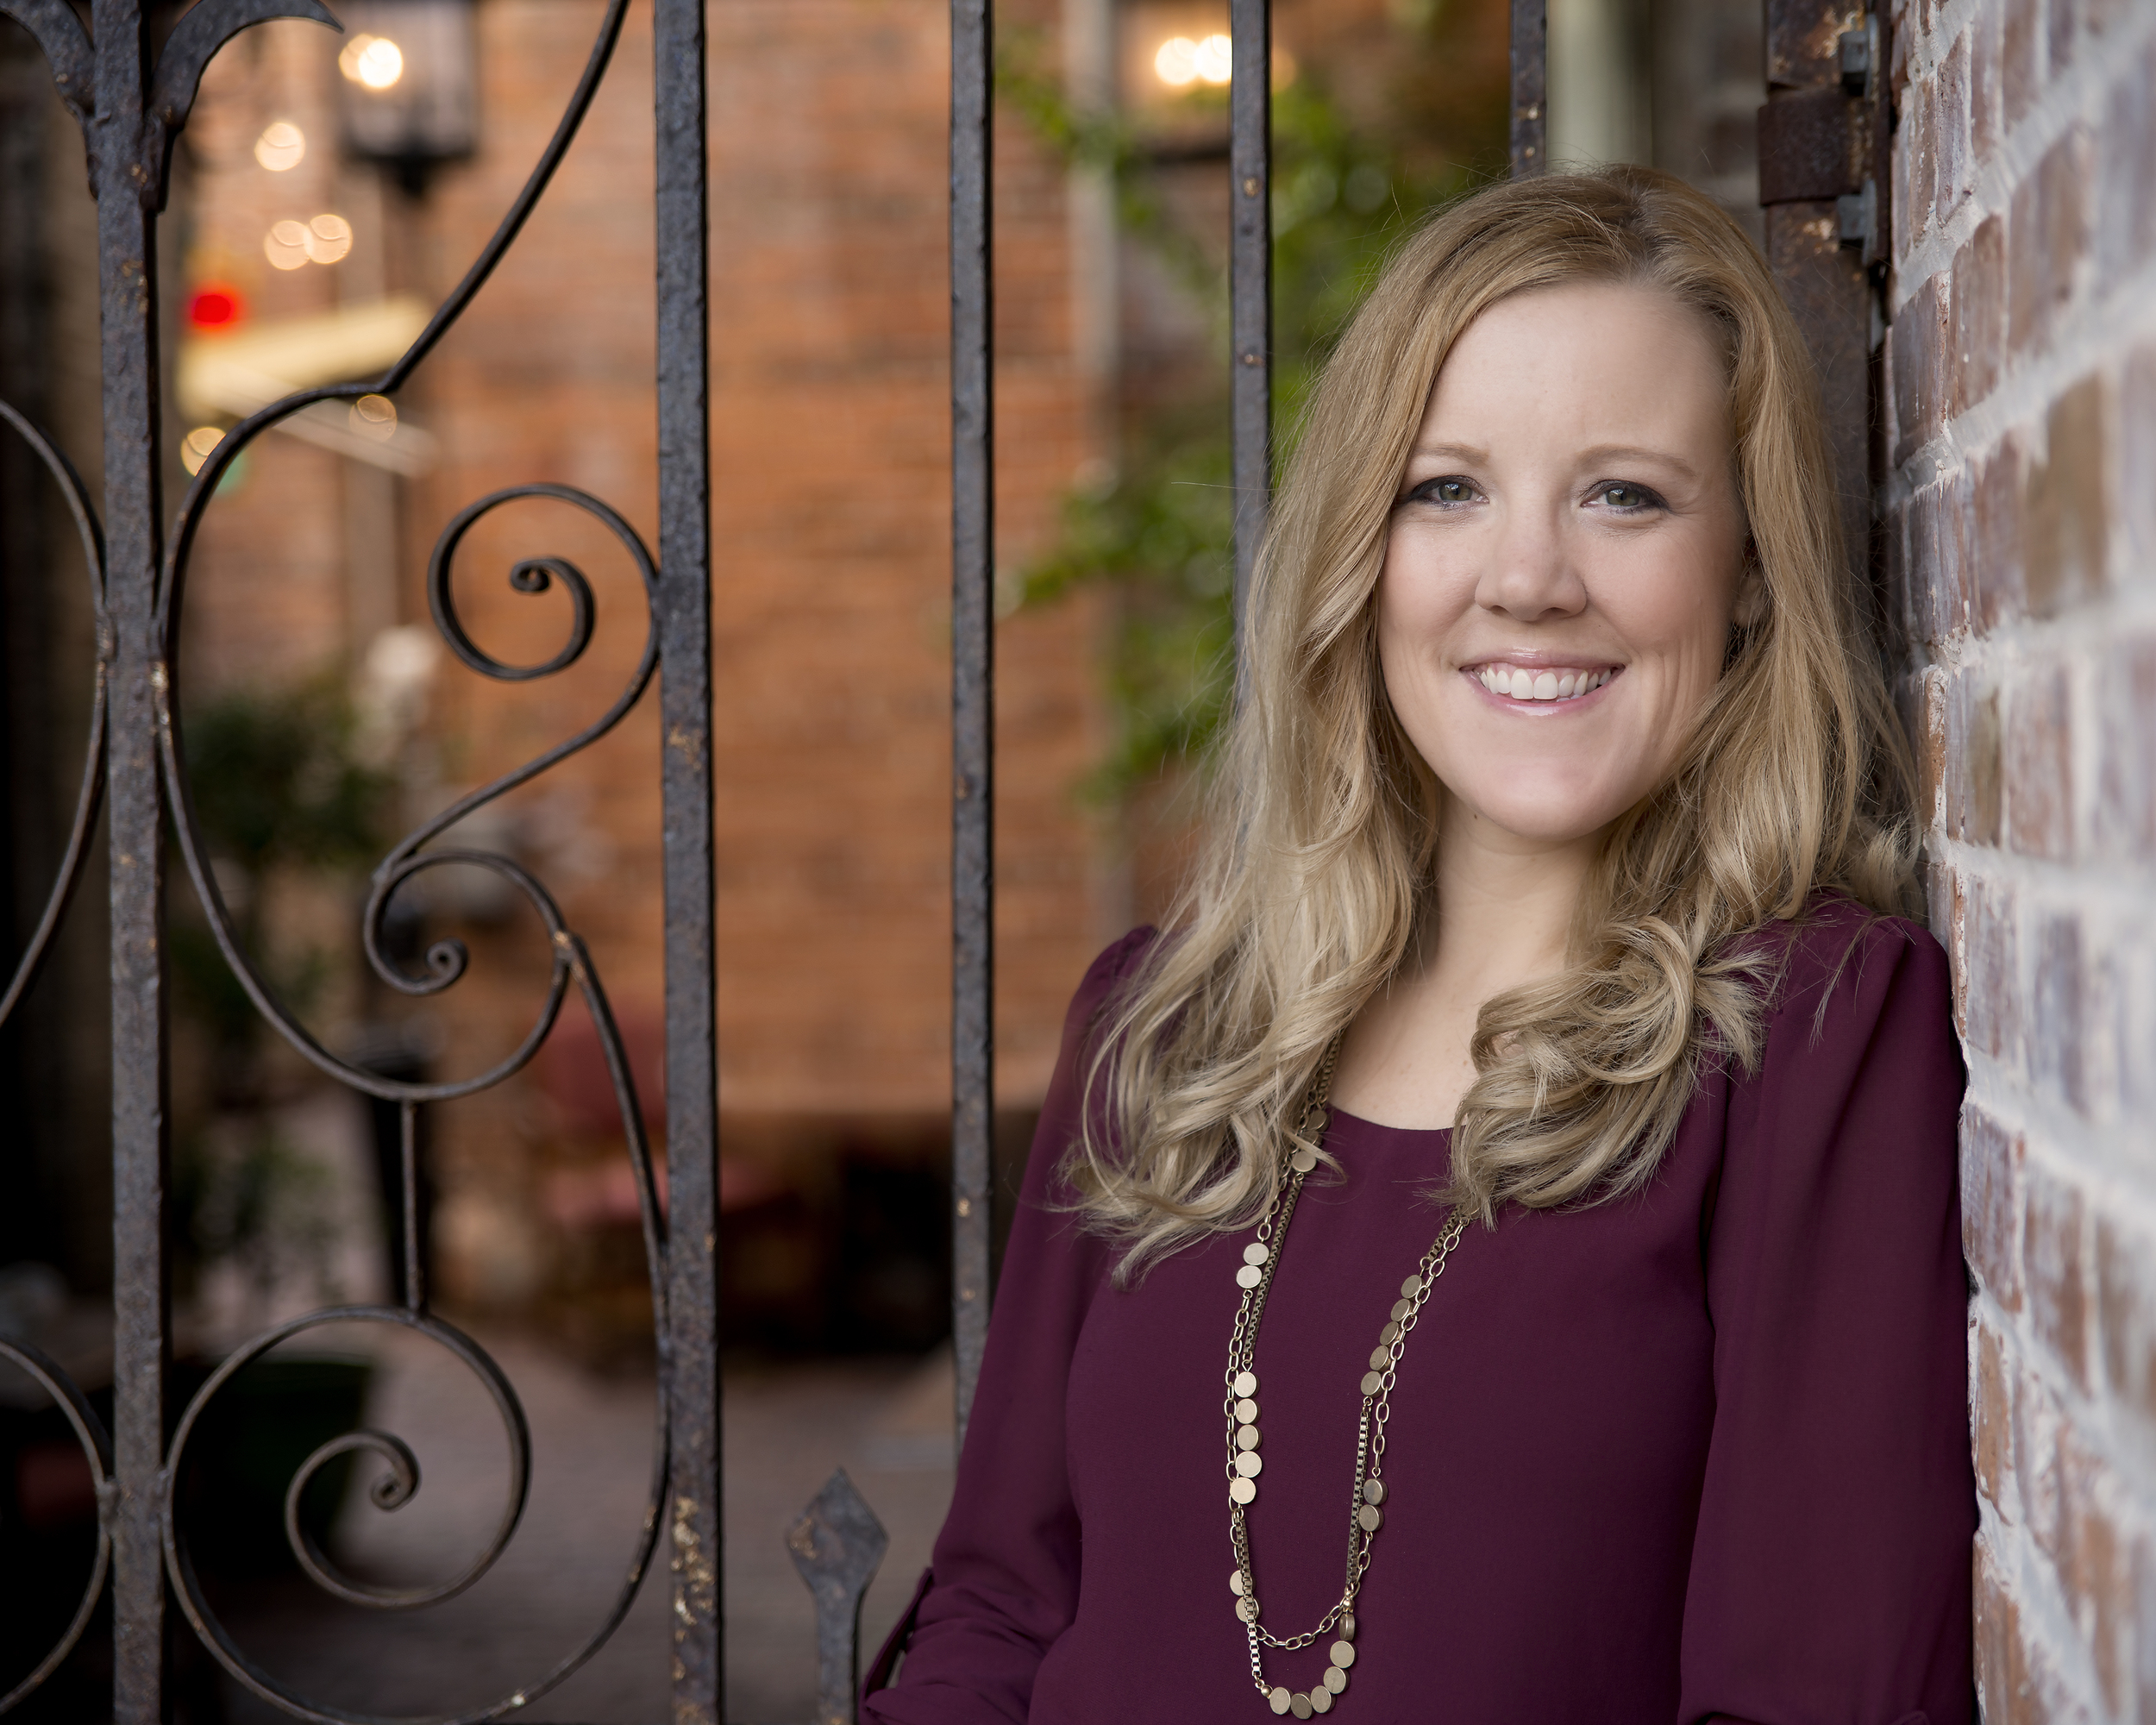 Amanda Sterk, school counselor and Founder of Unmaze Me